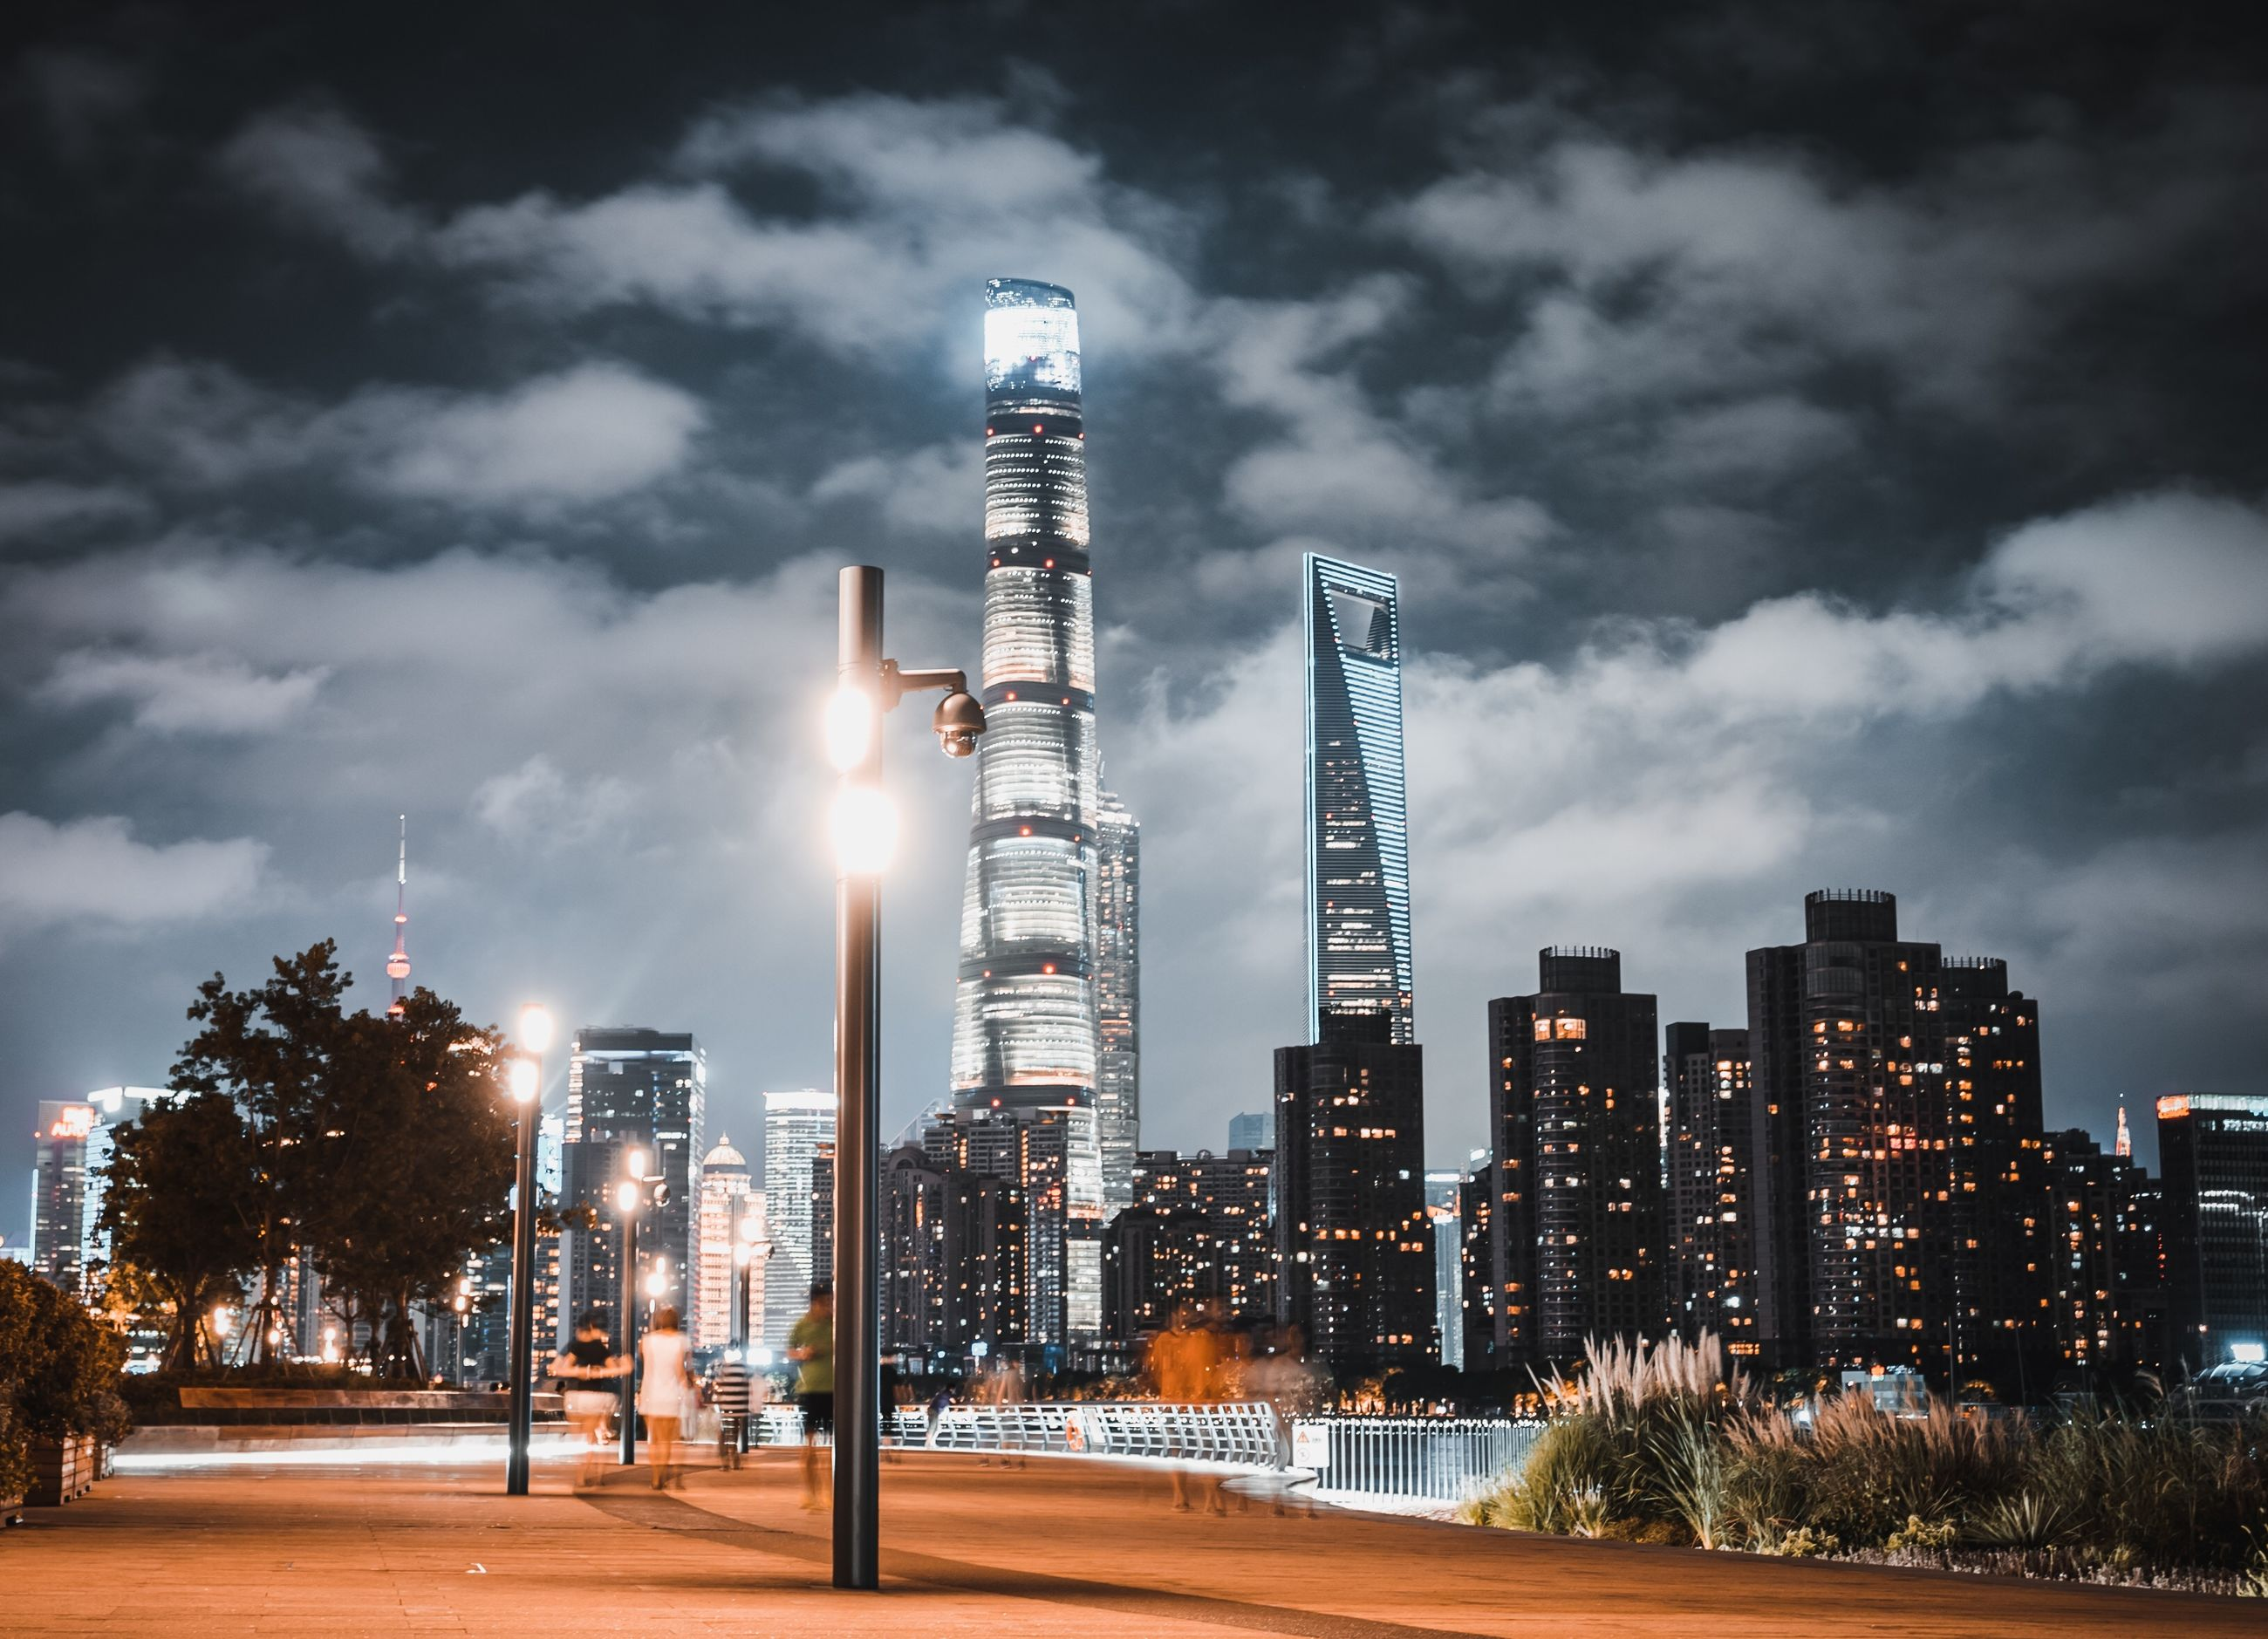 building exterior, sky, built structure, architecture, cloud - sky, city, nature, tall - high, no people, tree, illuminated, office building exterior, building, plant, skyscraper, tower, outdoors, night, transportation, road, modern, cityscape, financial district